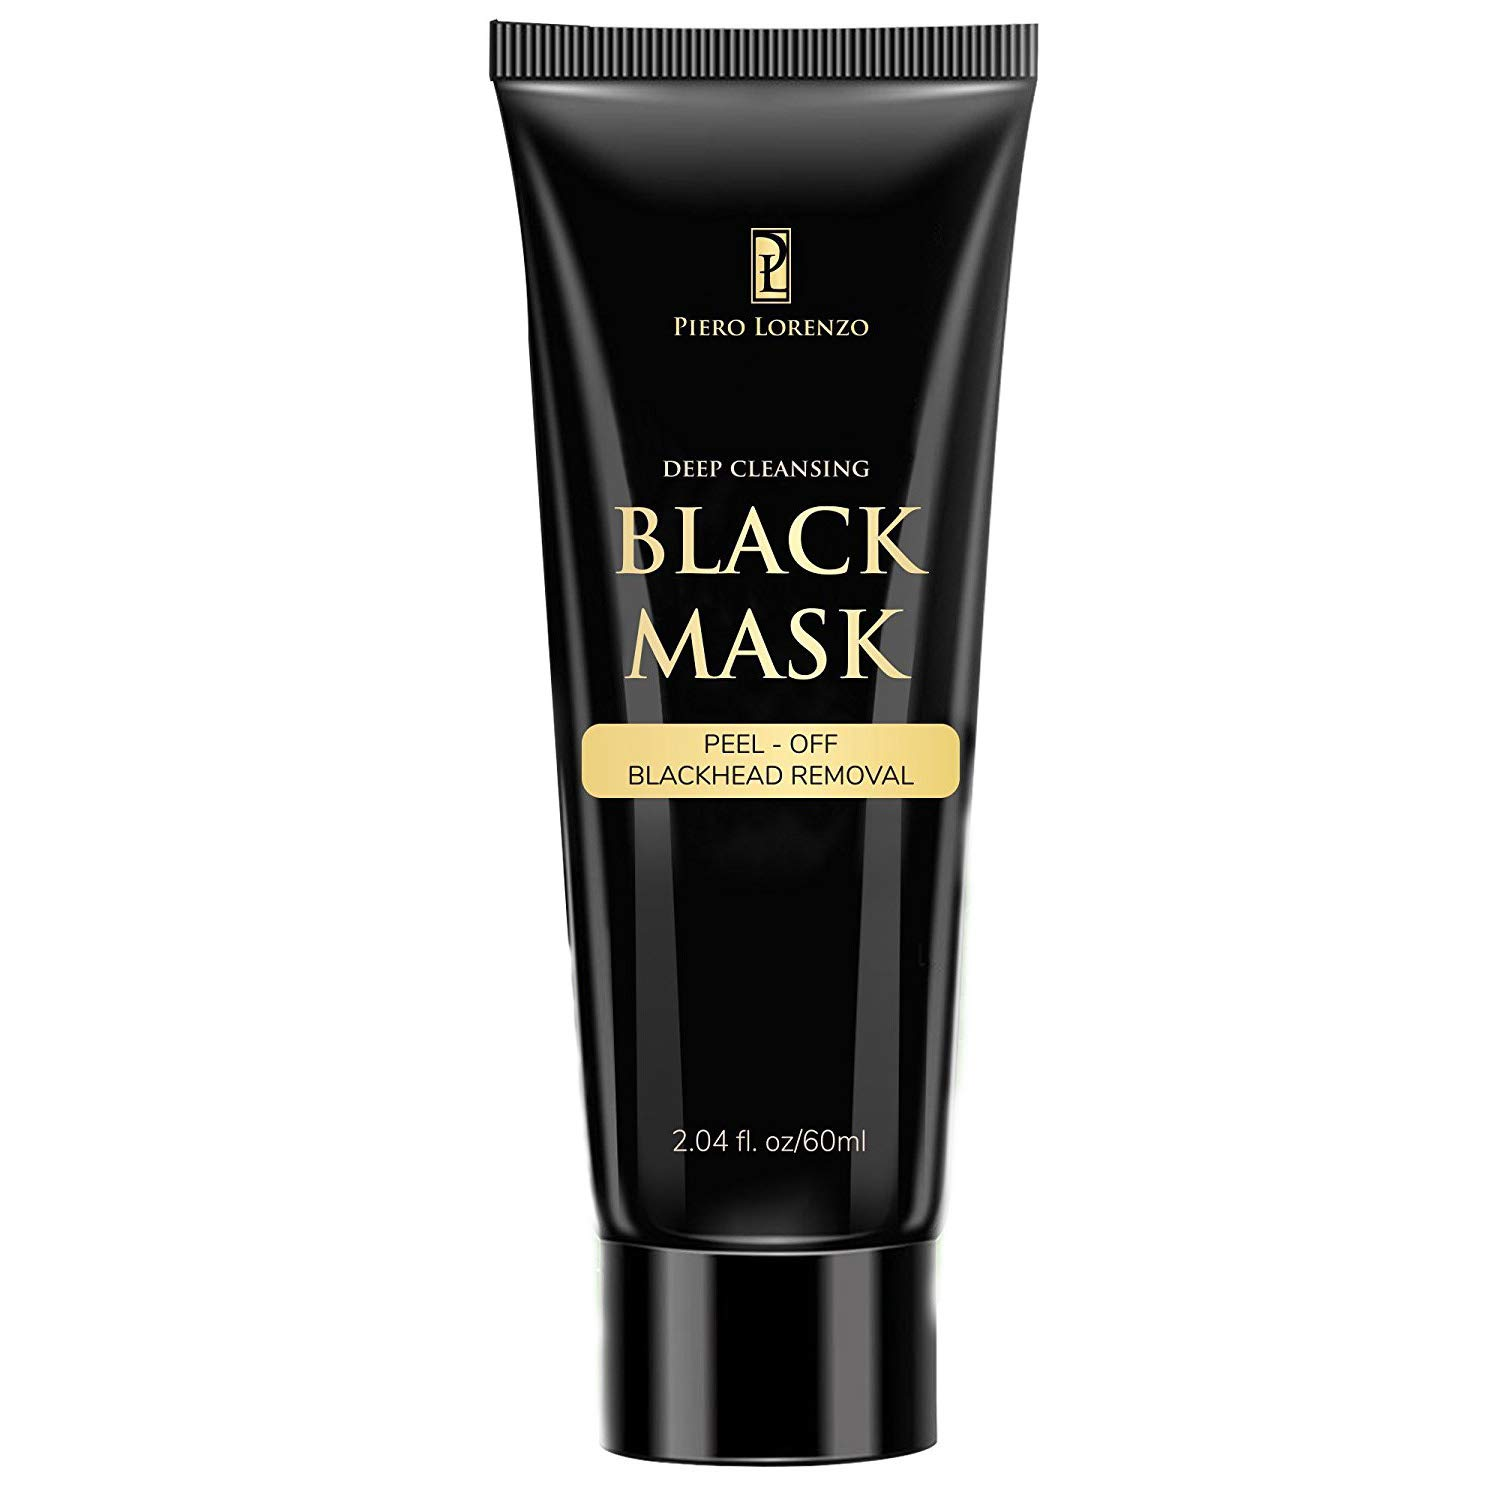 Blackhead Remover Black Mask Cleaner - Purifying Quality Mask Best Mud Facial Mask Bamboo Charcoal Deep Cleansing Purifying Acne Blackhead Peel-off Mask 60g LTD